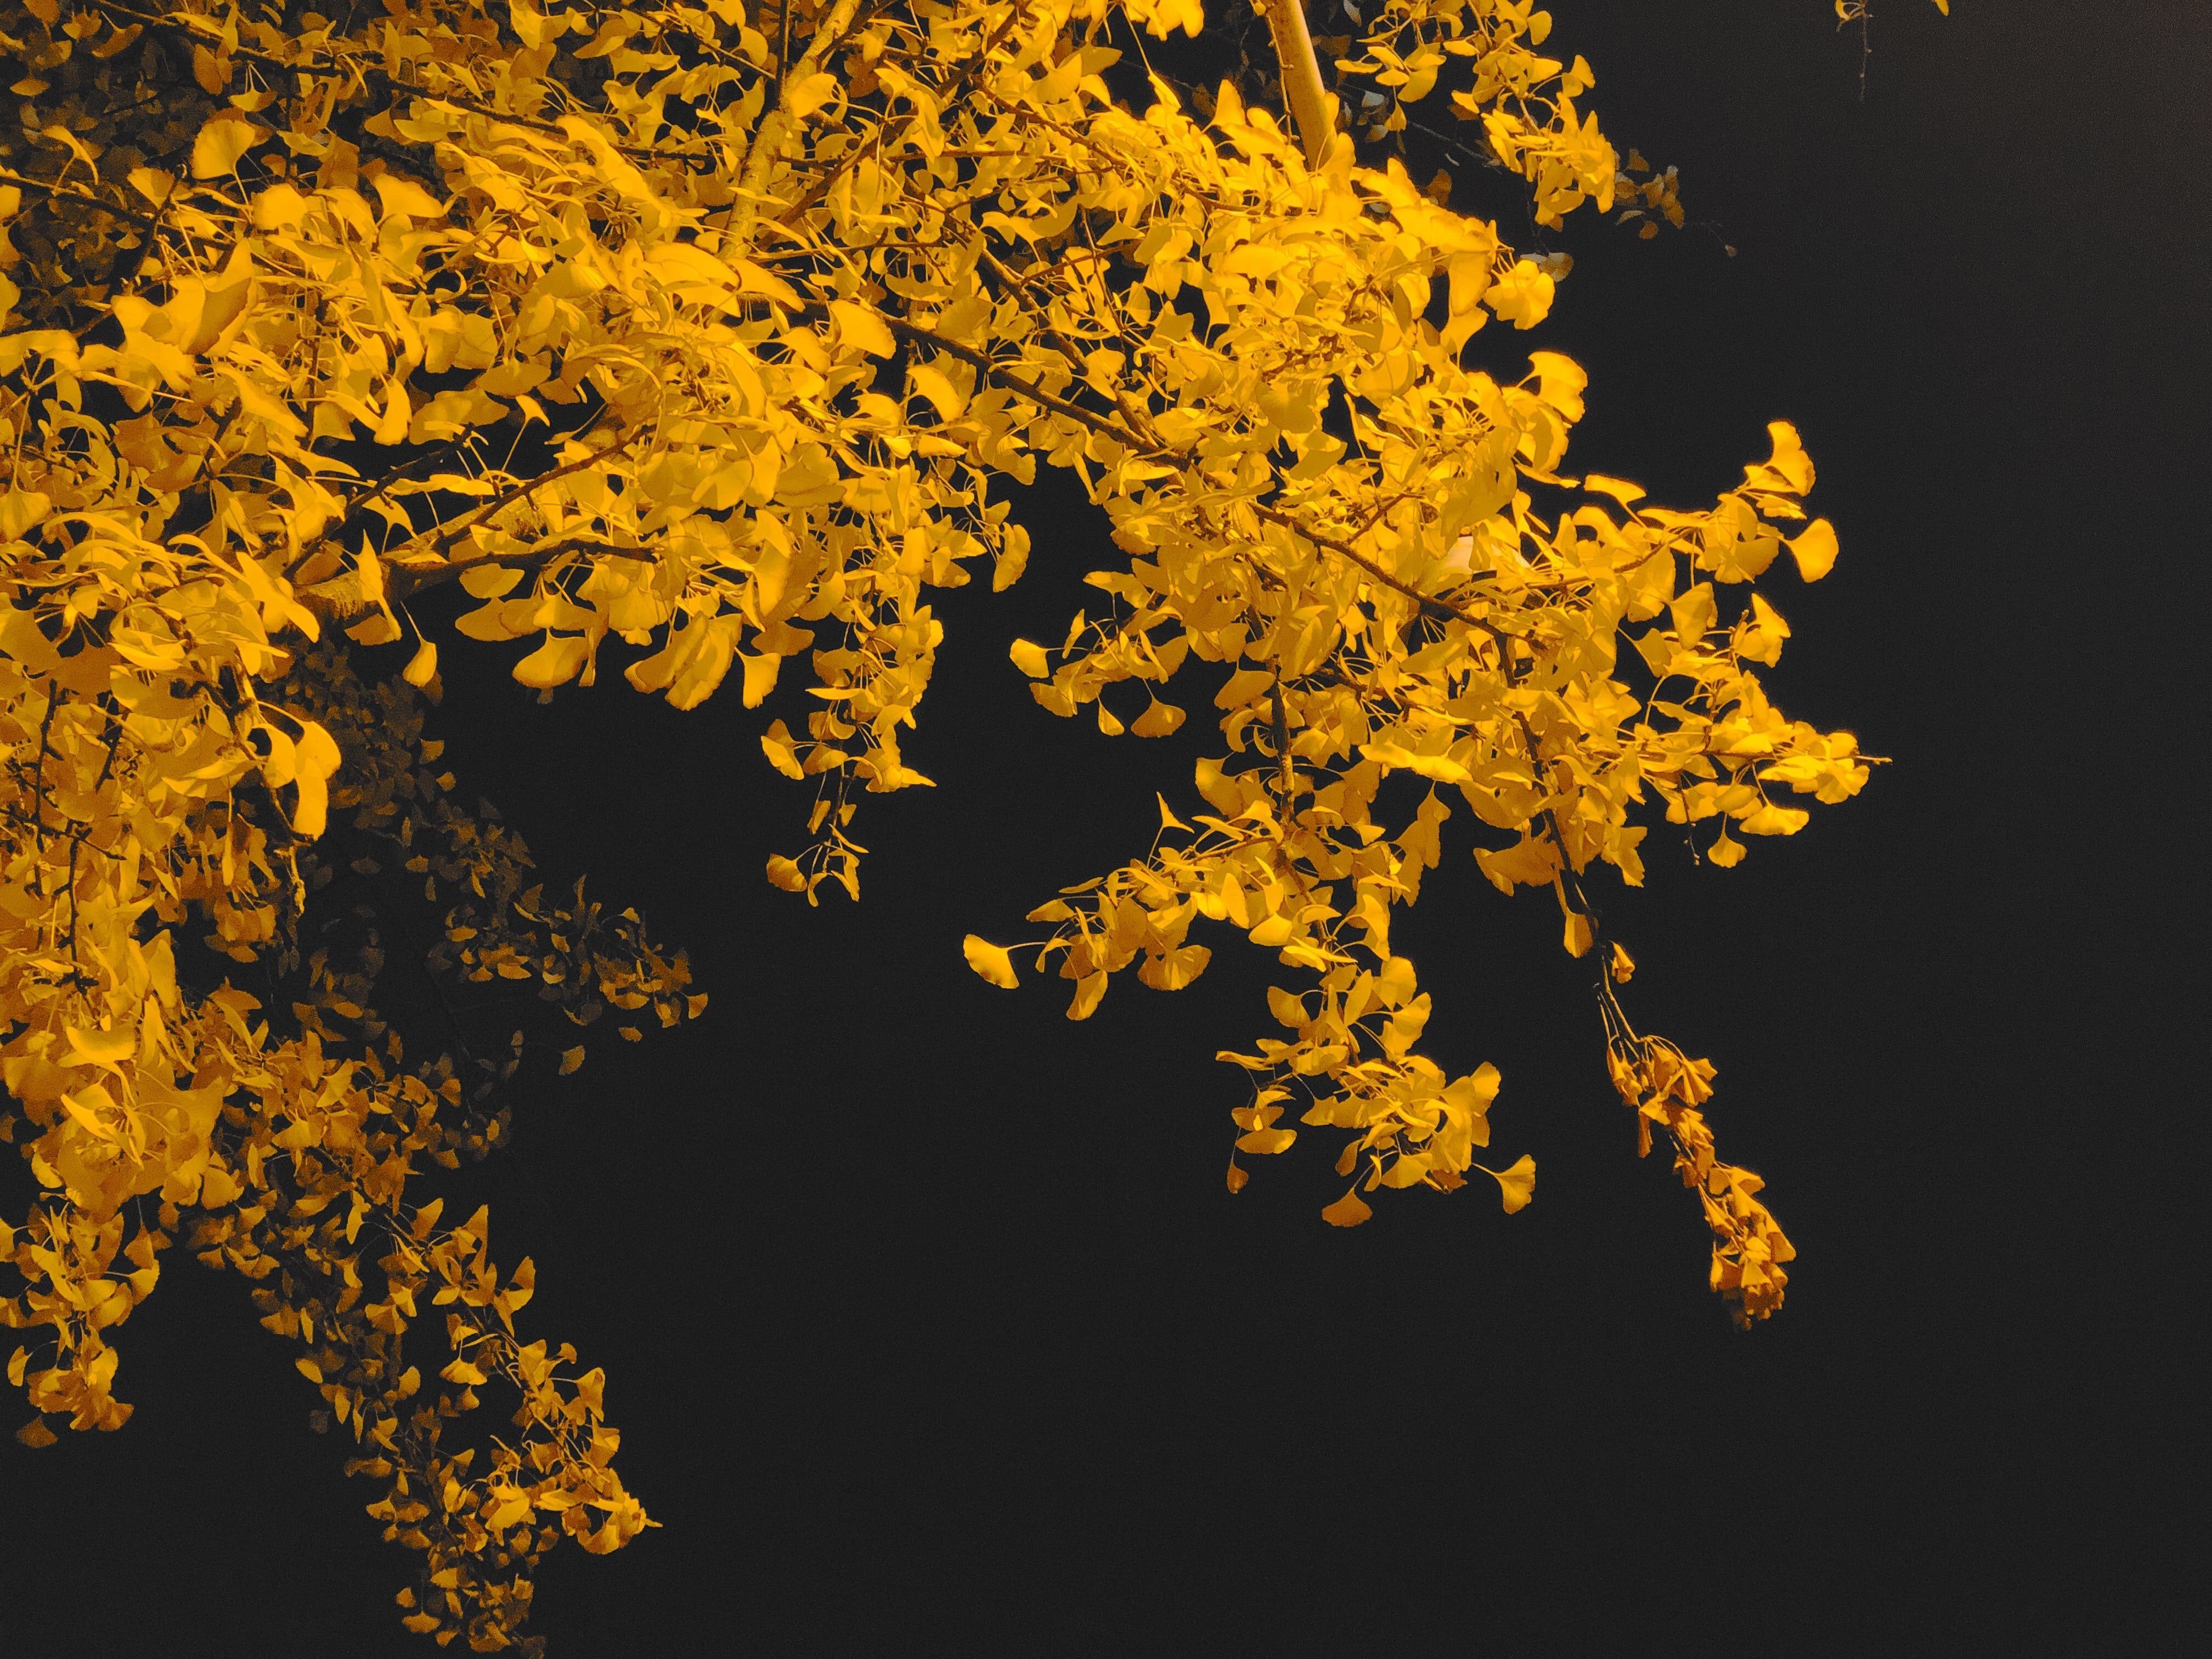 yellow and black floral textile